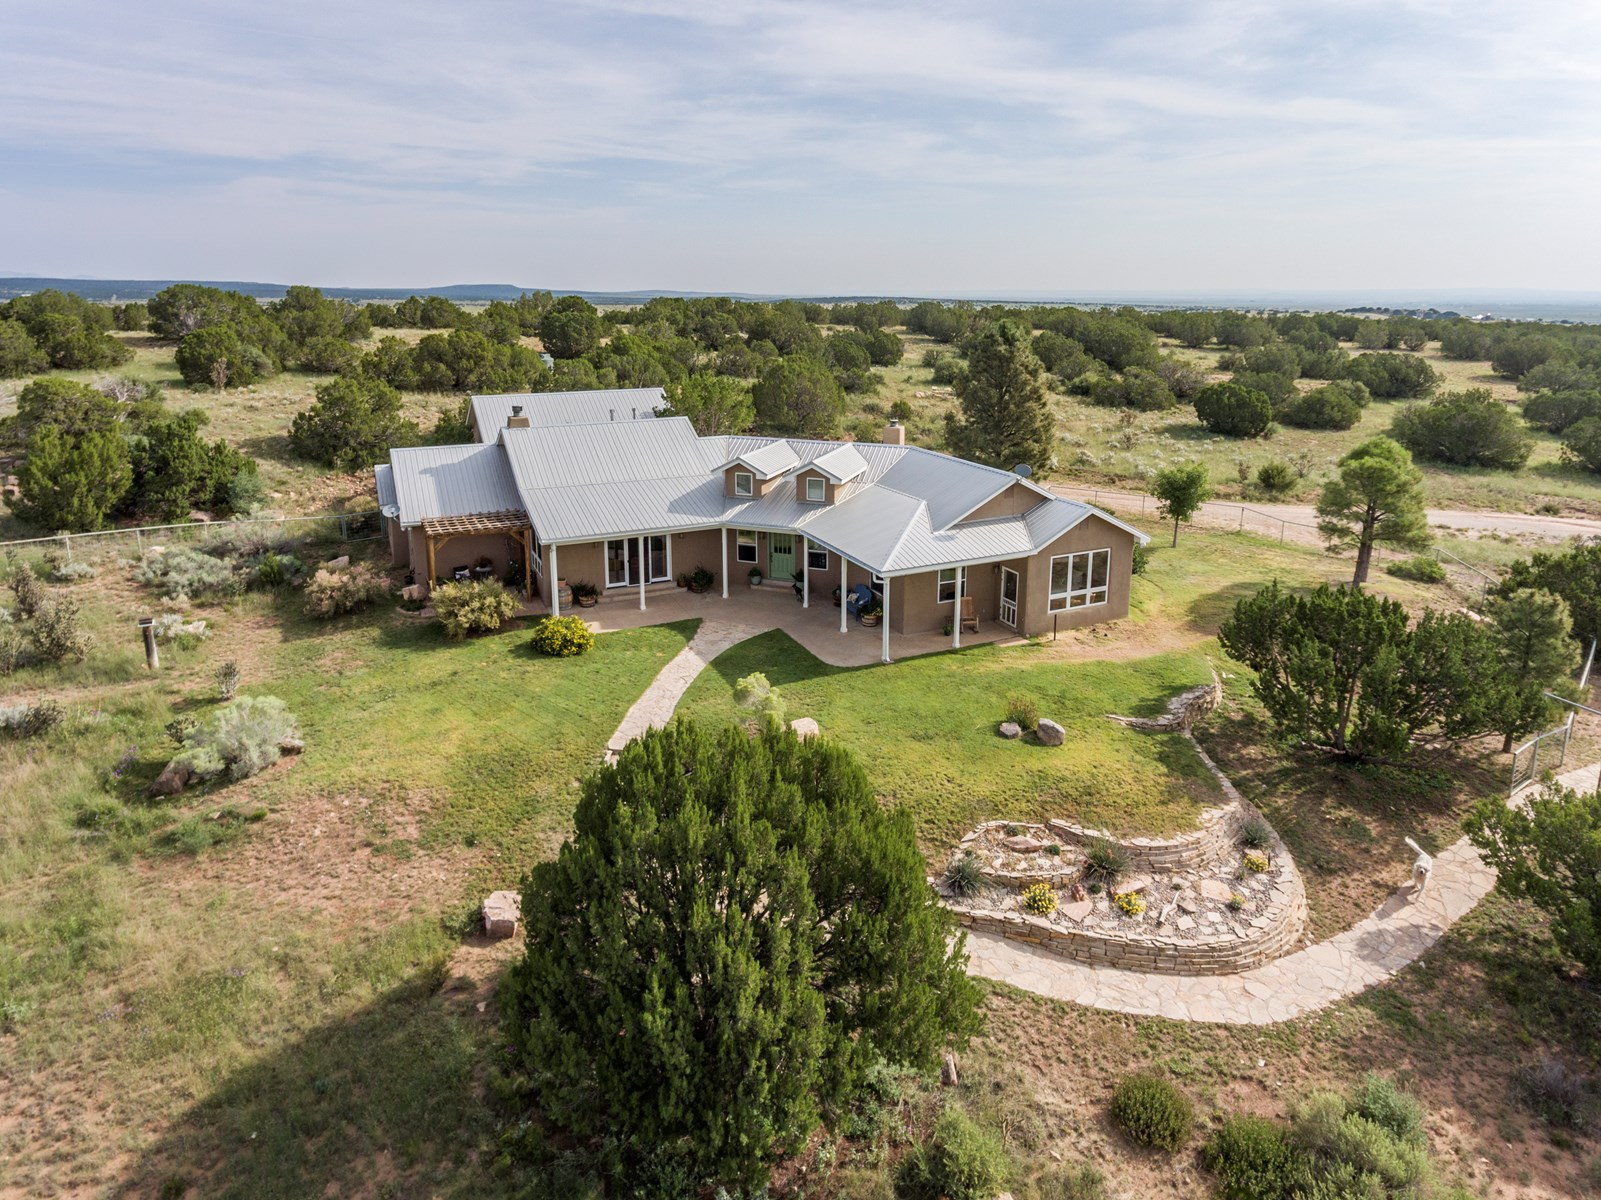 For Sale New Mexico Luxury Country Home on 40 Acres